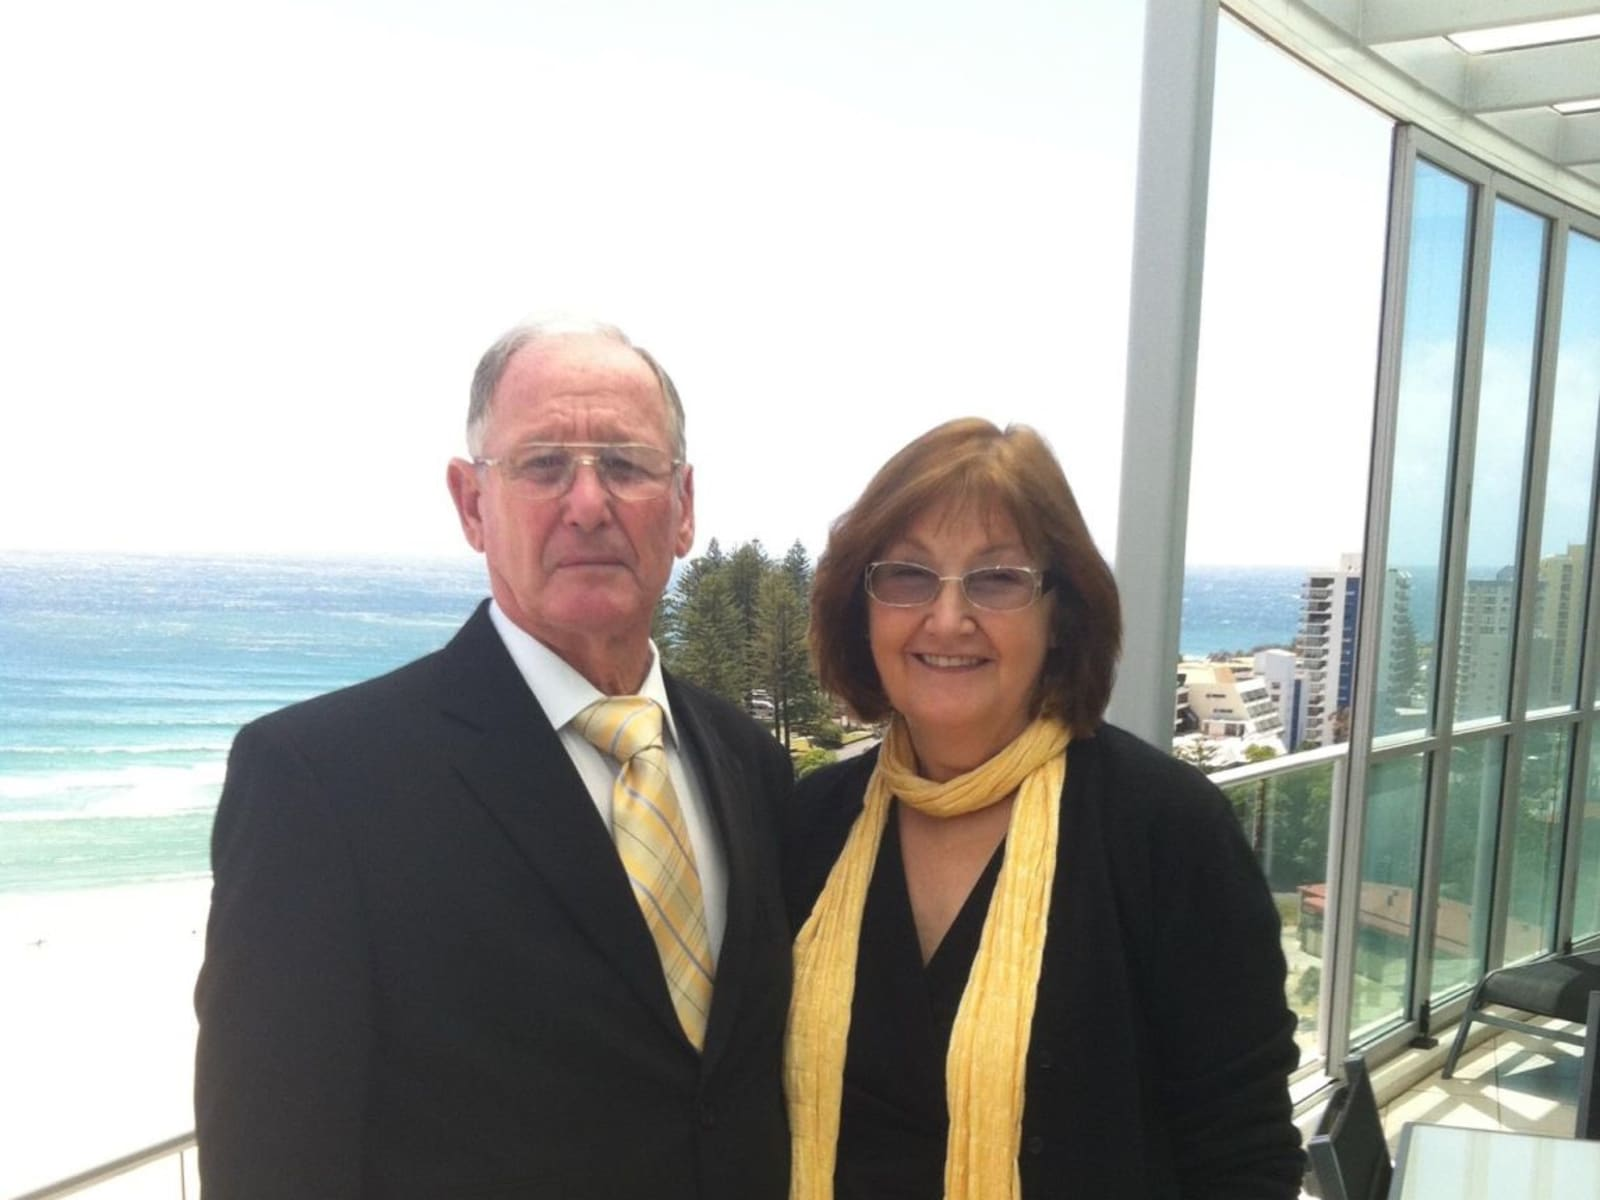 Sylvia & Barry from Campbelltown, New South Wales, Australia